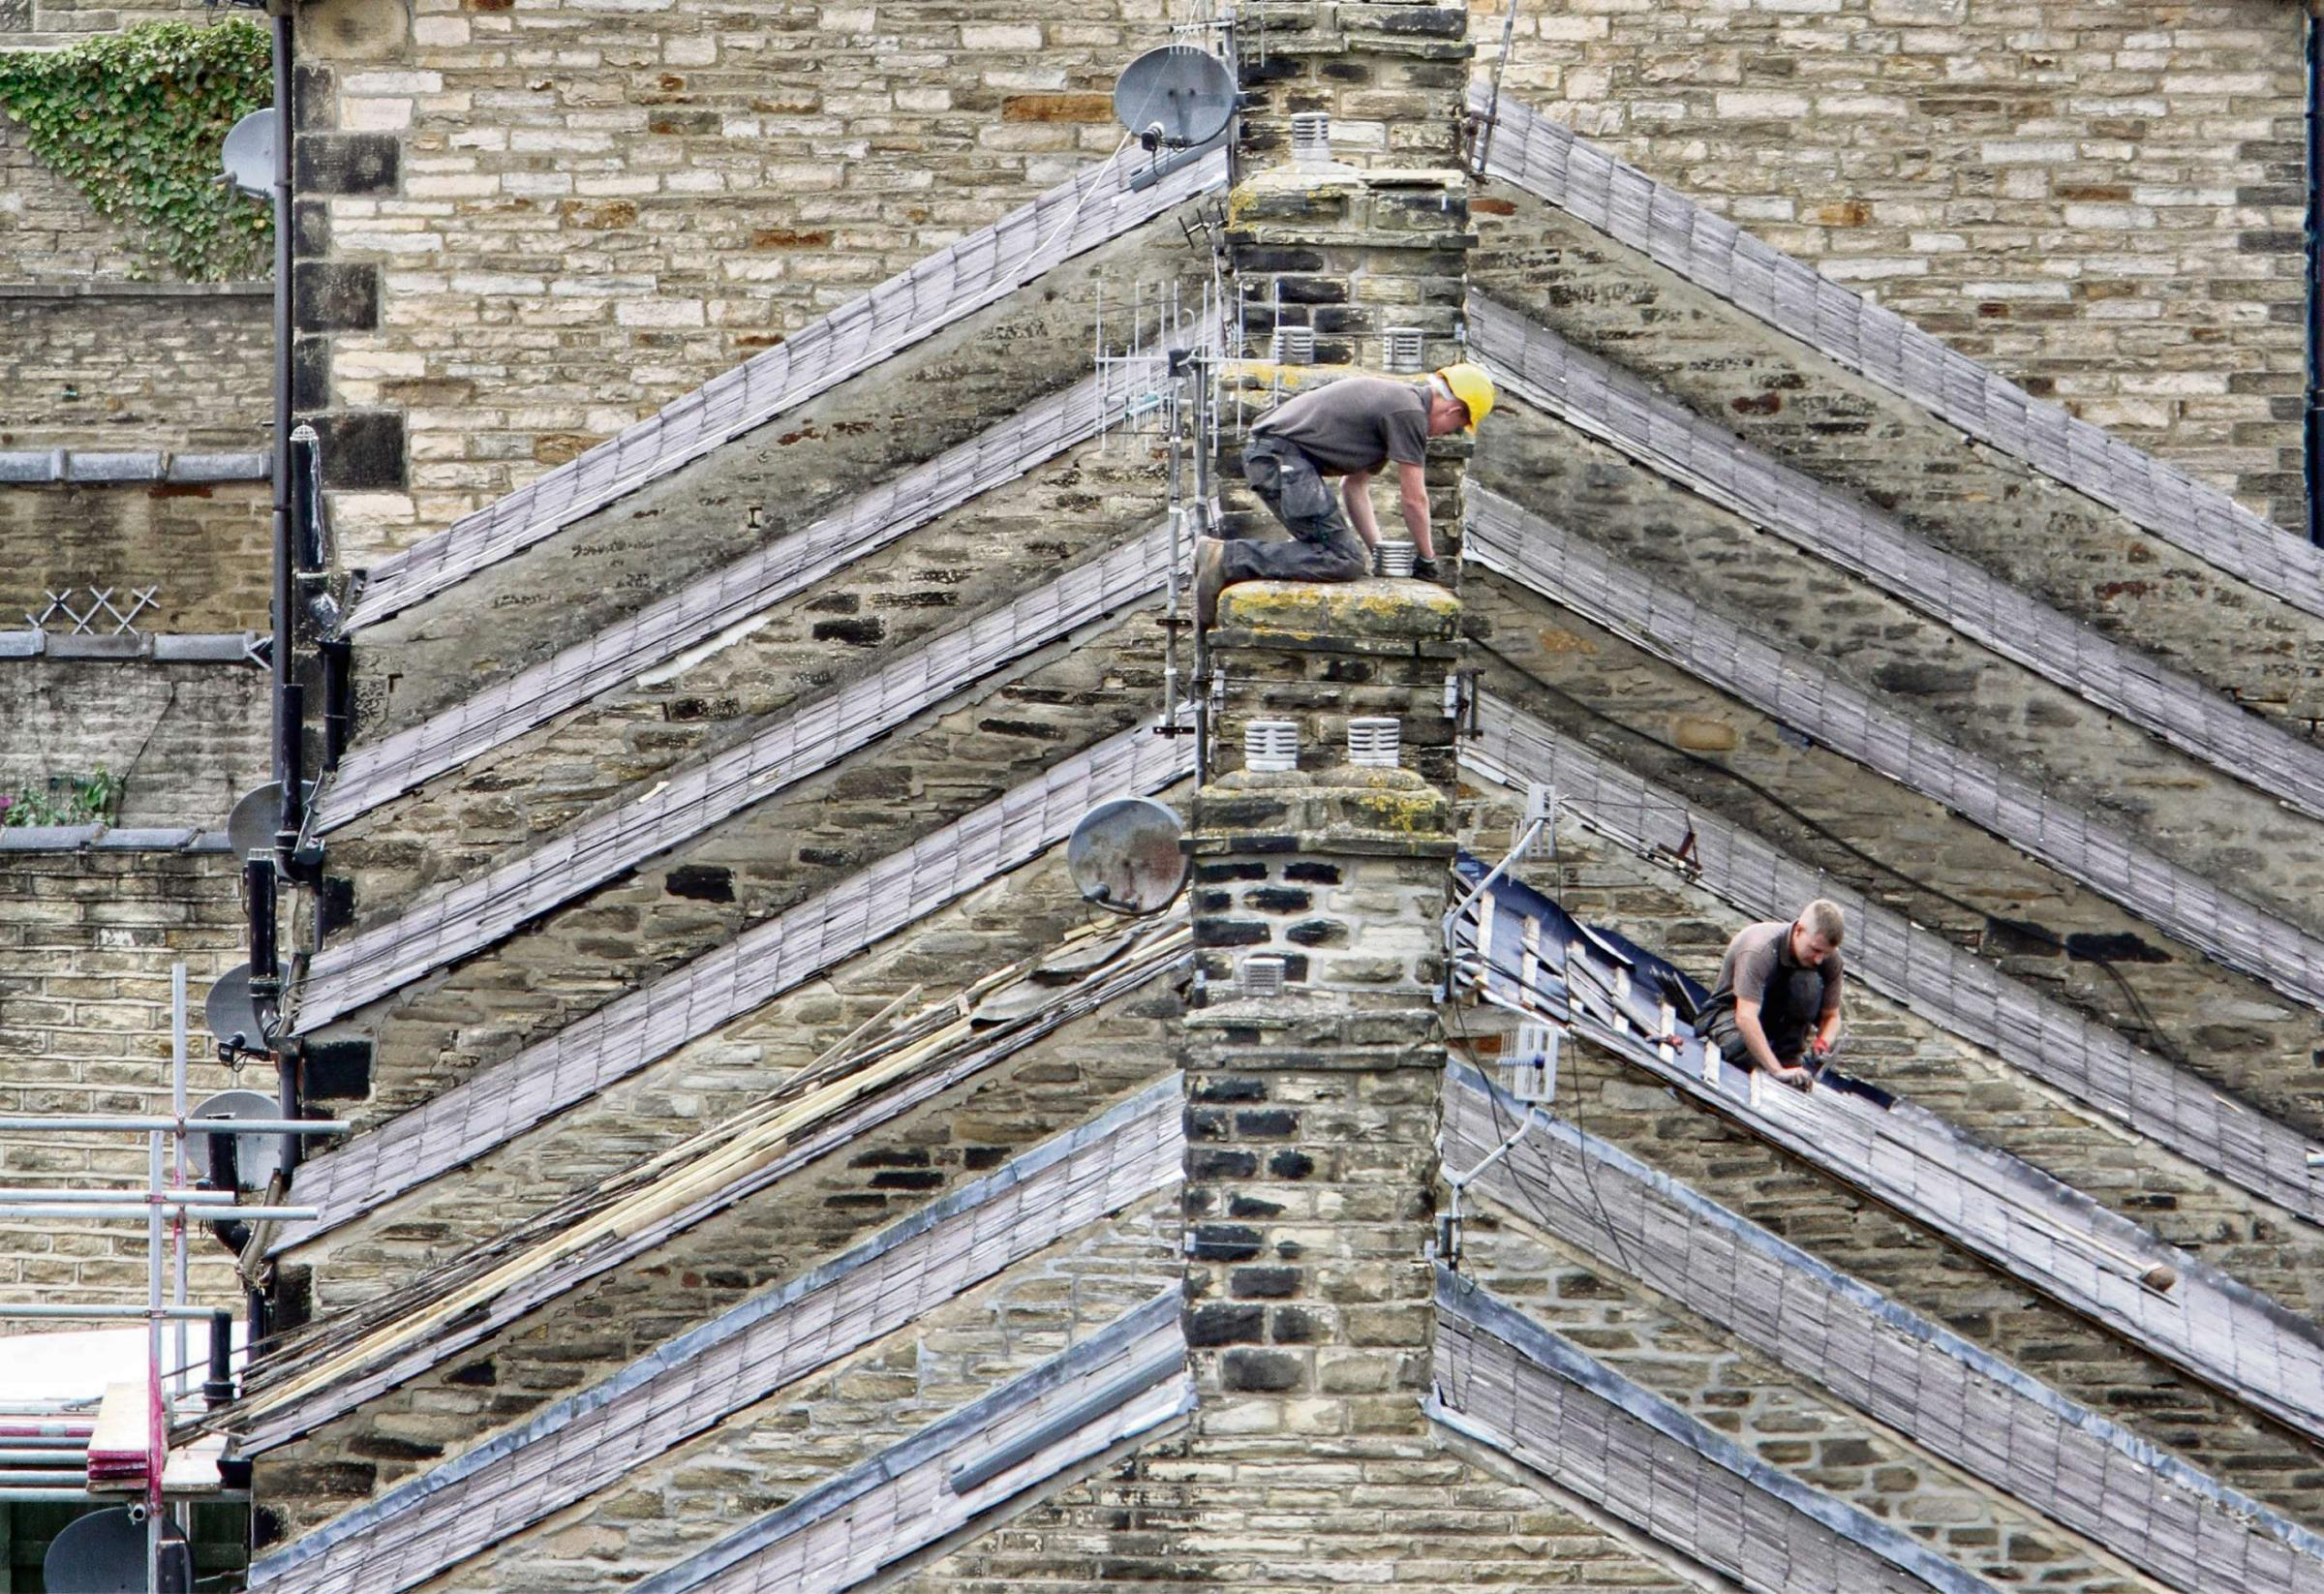 Garnetts Year -    A  pair of roofers from Tidswell Roofing ply their trade working on the  Geometric angles of roofs stack in rows in Middletown , Skip